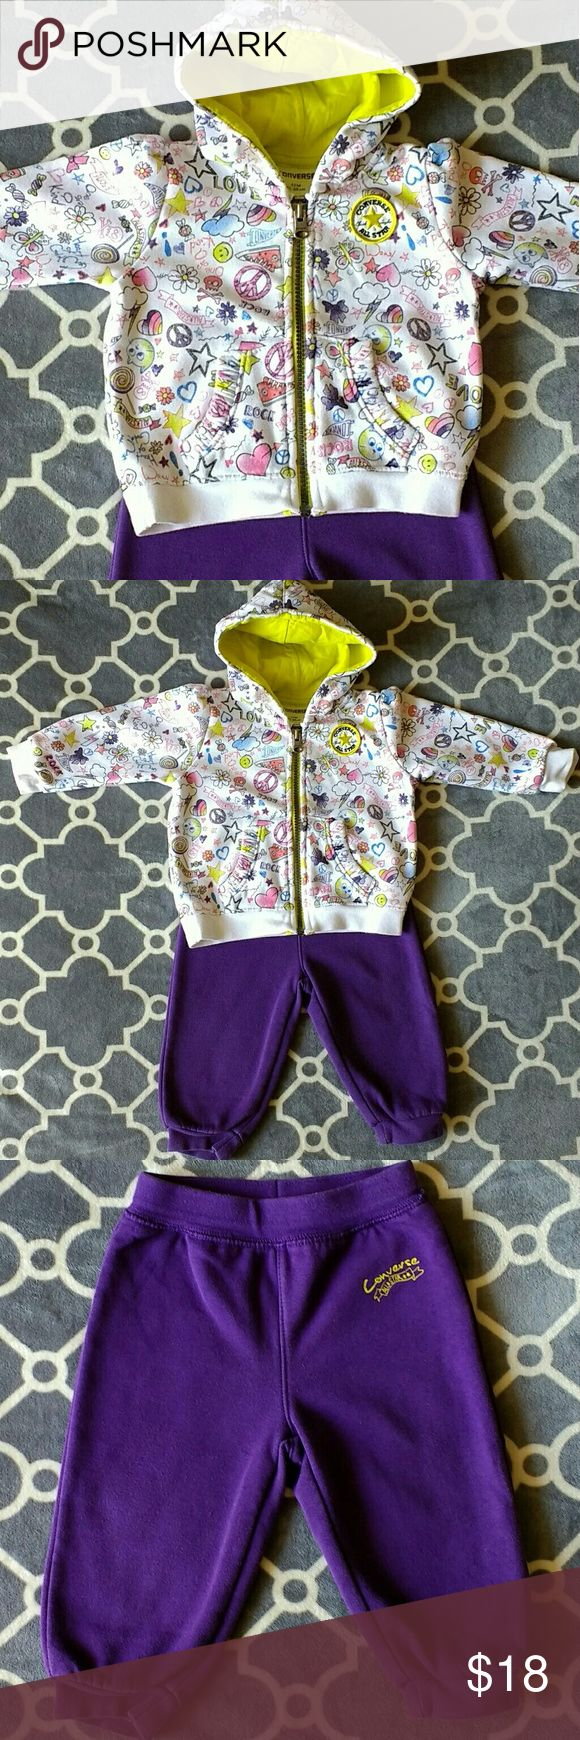 Converse tracksuit set size 12 months Item Tracksuit zipper hoodie and pants Brand Converse Size 12 months Color Aubergine pants, white jacket with neon yellow/green hoodie and beautiful colorful print Condition used, no major damage or stains. Great used condition. Washed with organic detergents only Smoke-free pet-free home Price reflects condition style and age P.S. Please bundle and/or make me a reasonable offer - I so so want for this great item to be worn and loved again :) Converse…